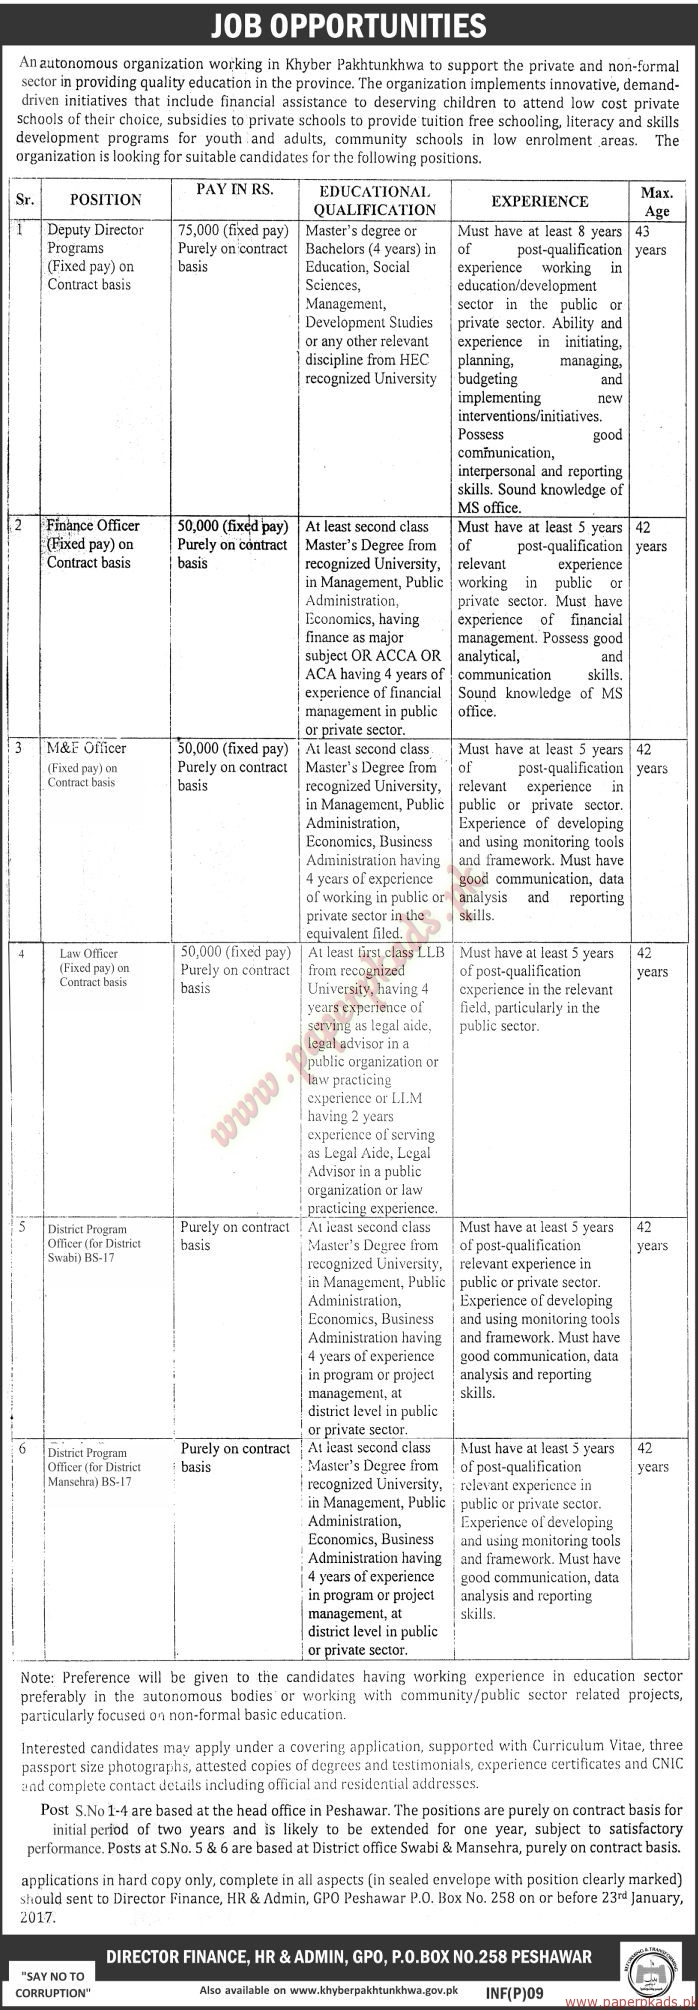 Autonomous Organization Jobs - The News Jobs ads 04 January 2017